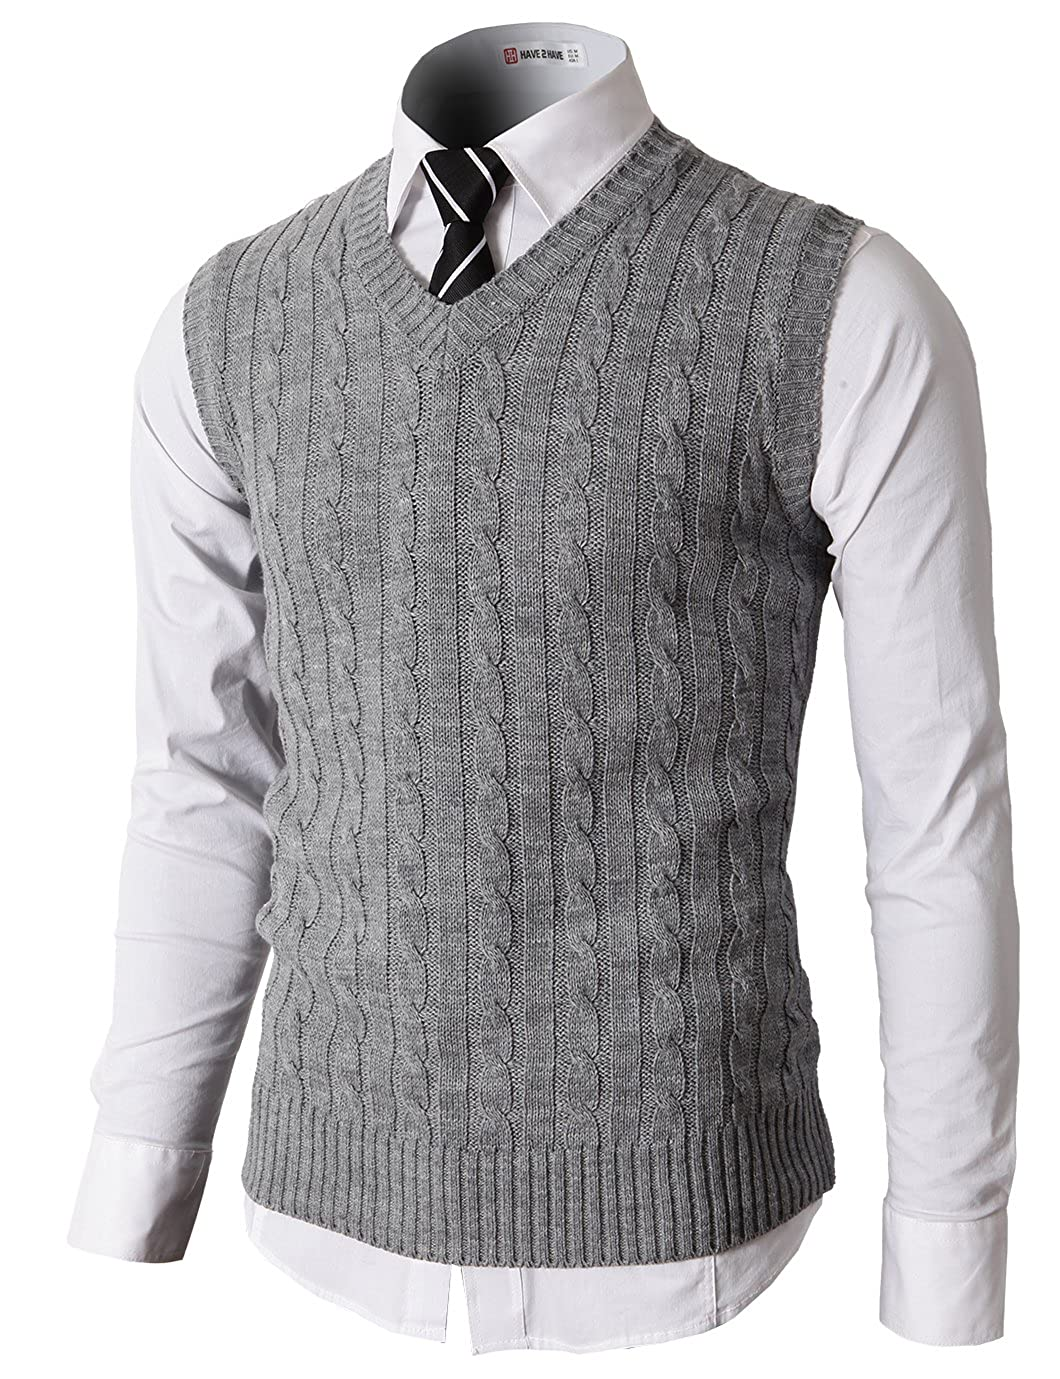 1920s Style Mens Vests H2H Mens Casual Knitted Slim Fit V-neck Vest With Twisted Patterned $26.80 AT vintagedancer.com